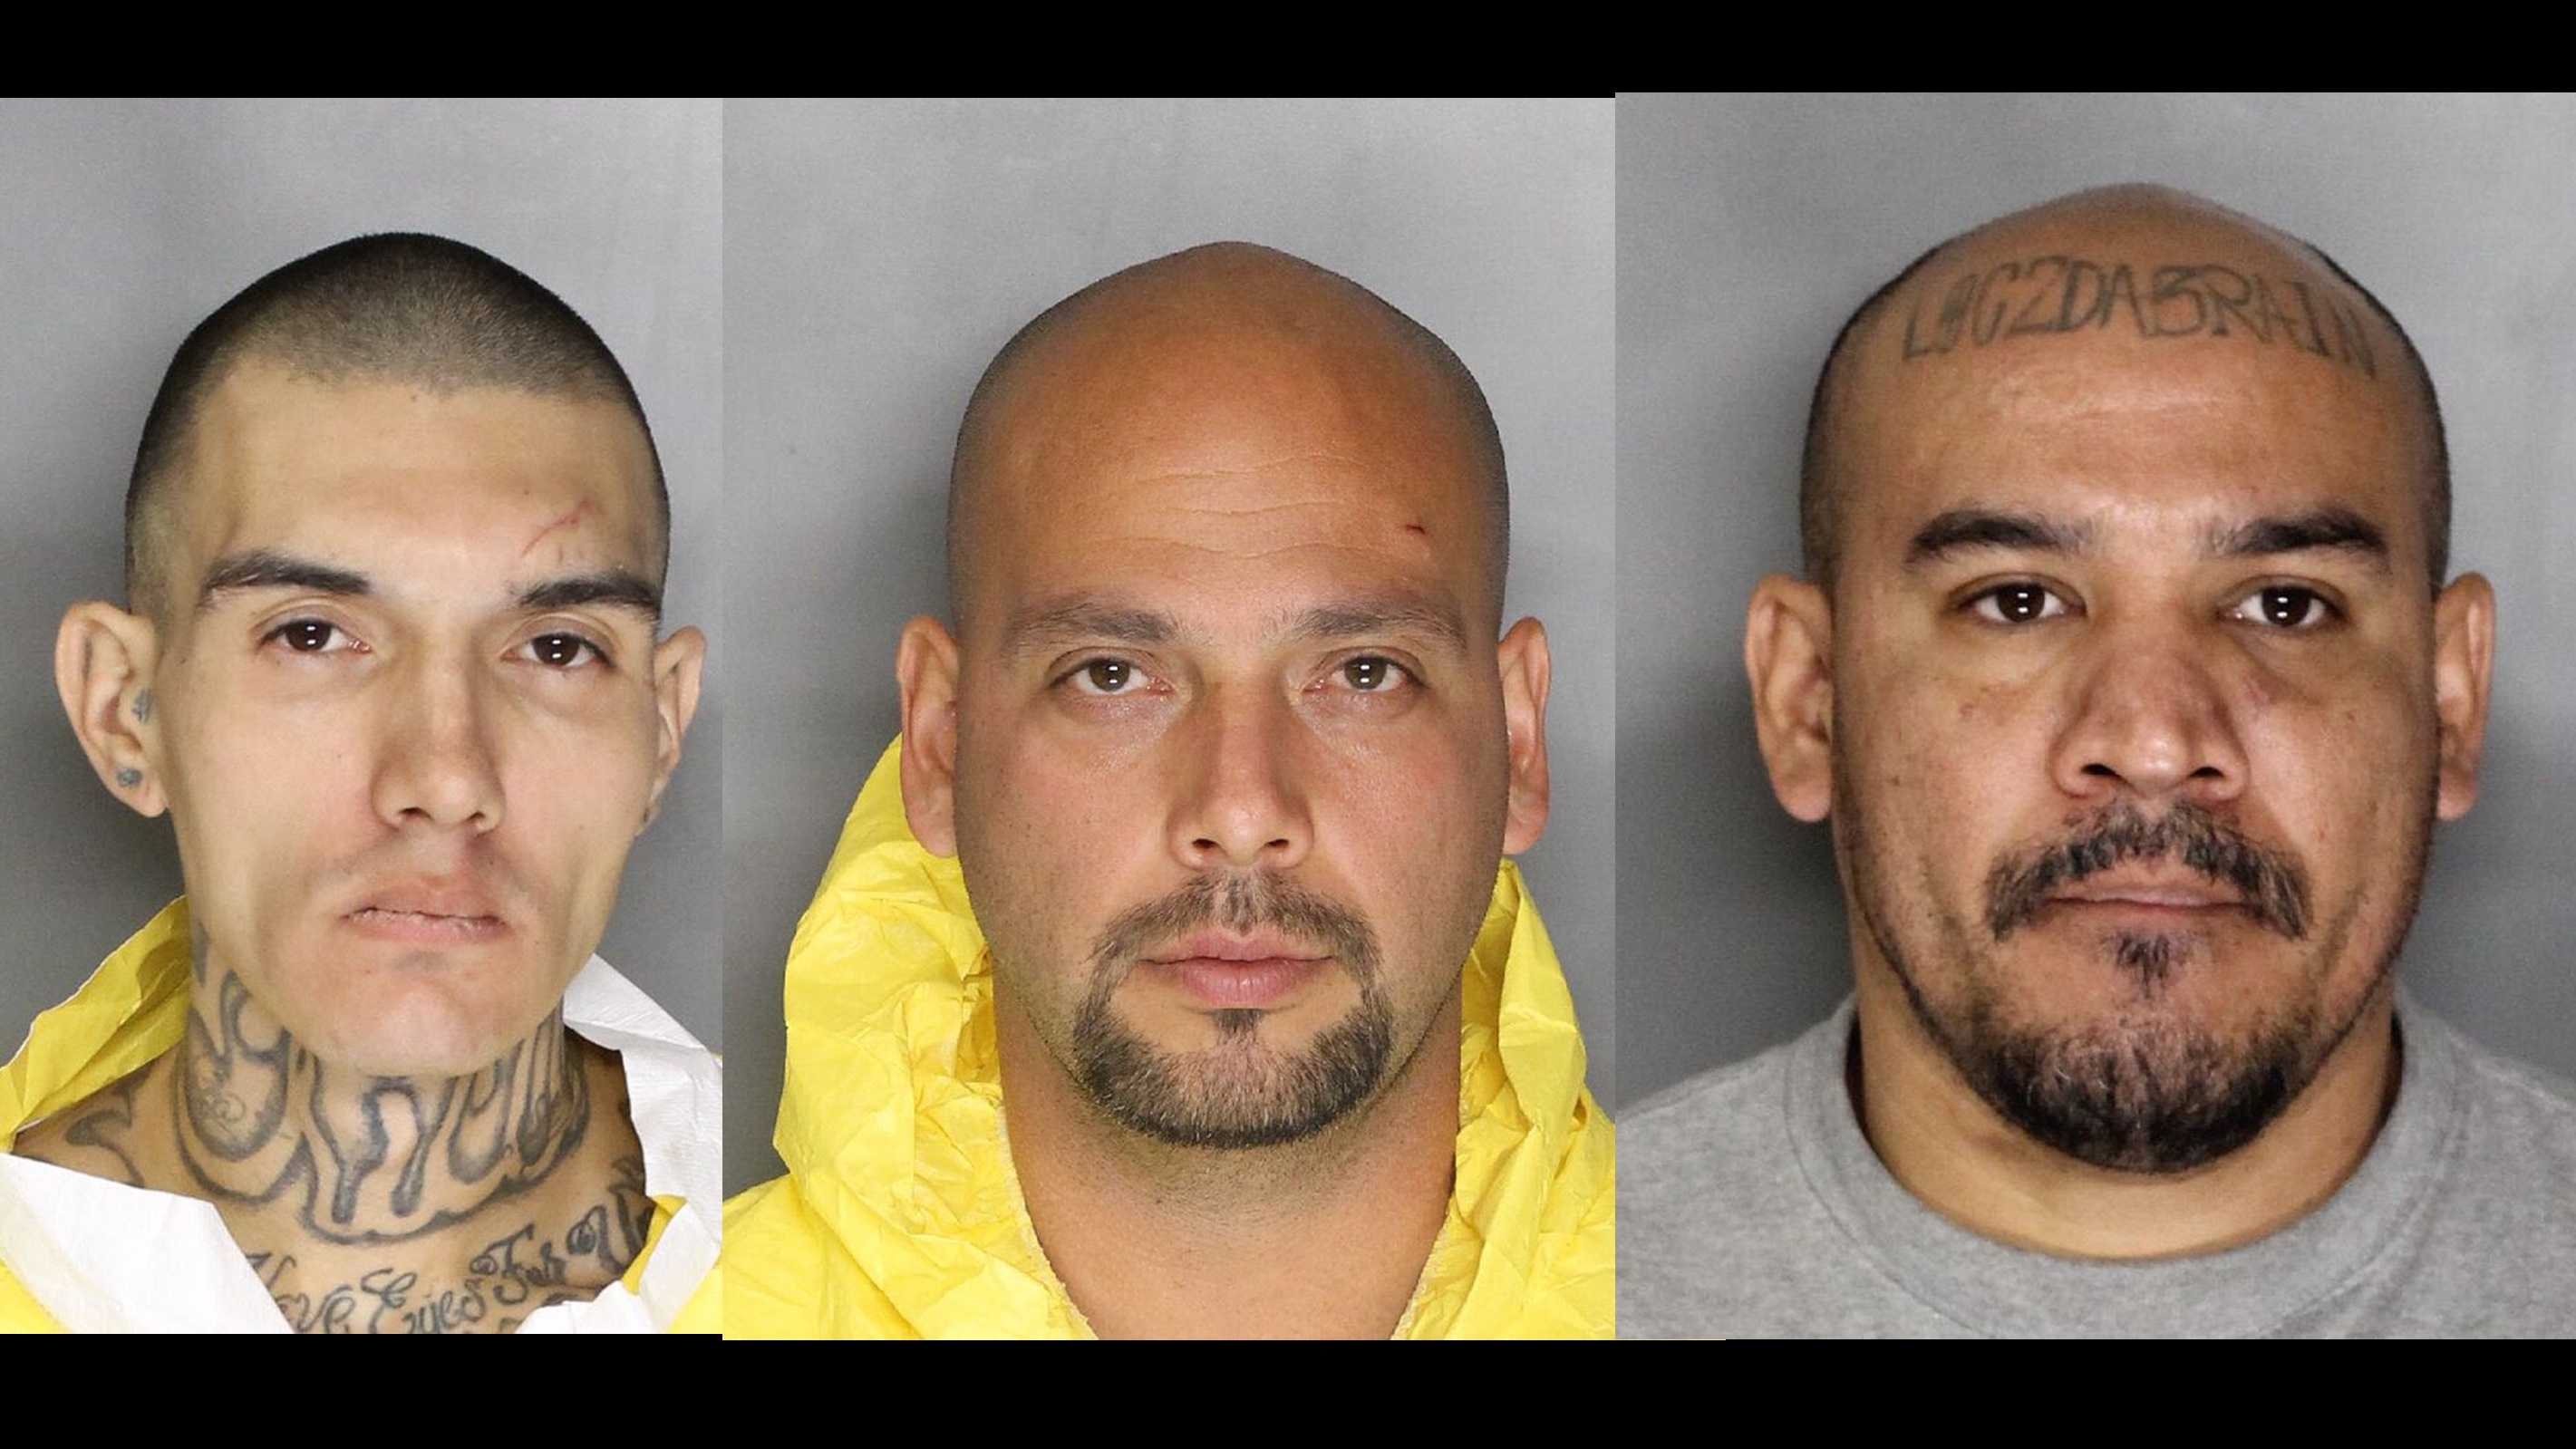 (Left to right) Kenneth Hopkins, 29, Jeremy Rosales, 36, and Benigno Duran, 35, were arrested in connection to a fatal stabbing outside a Sacramento apartment complex, the Sacramento Police Department said Wednesday, Dec. 23, 2015.